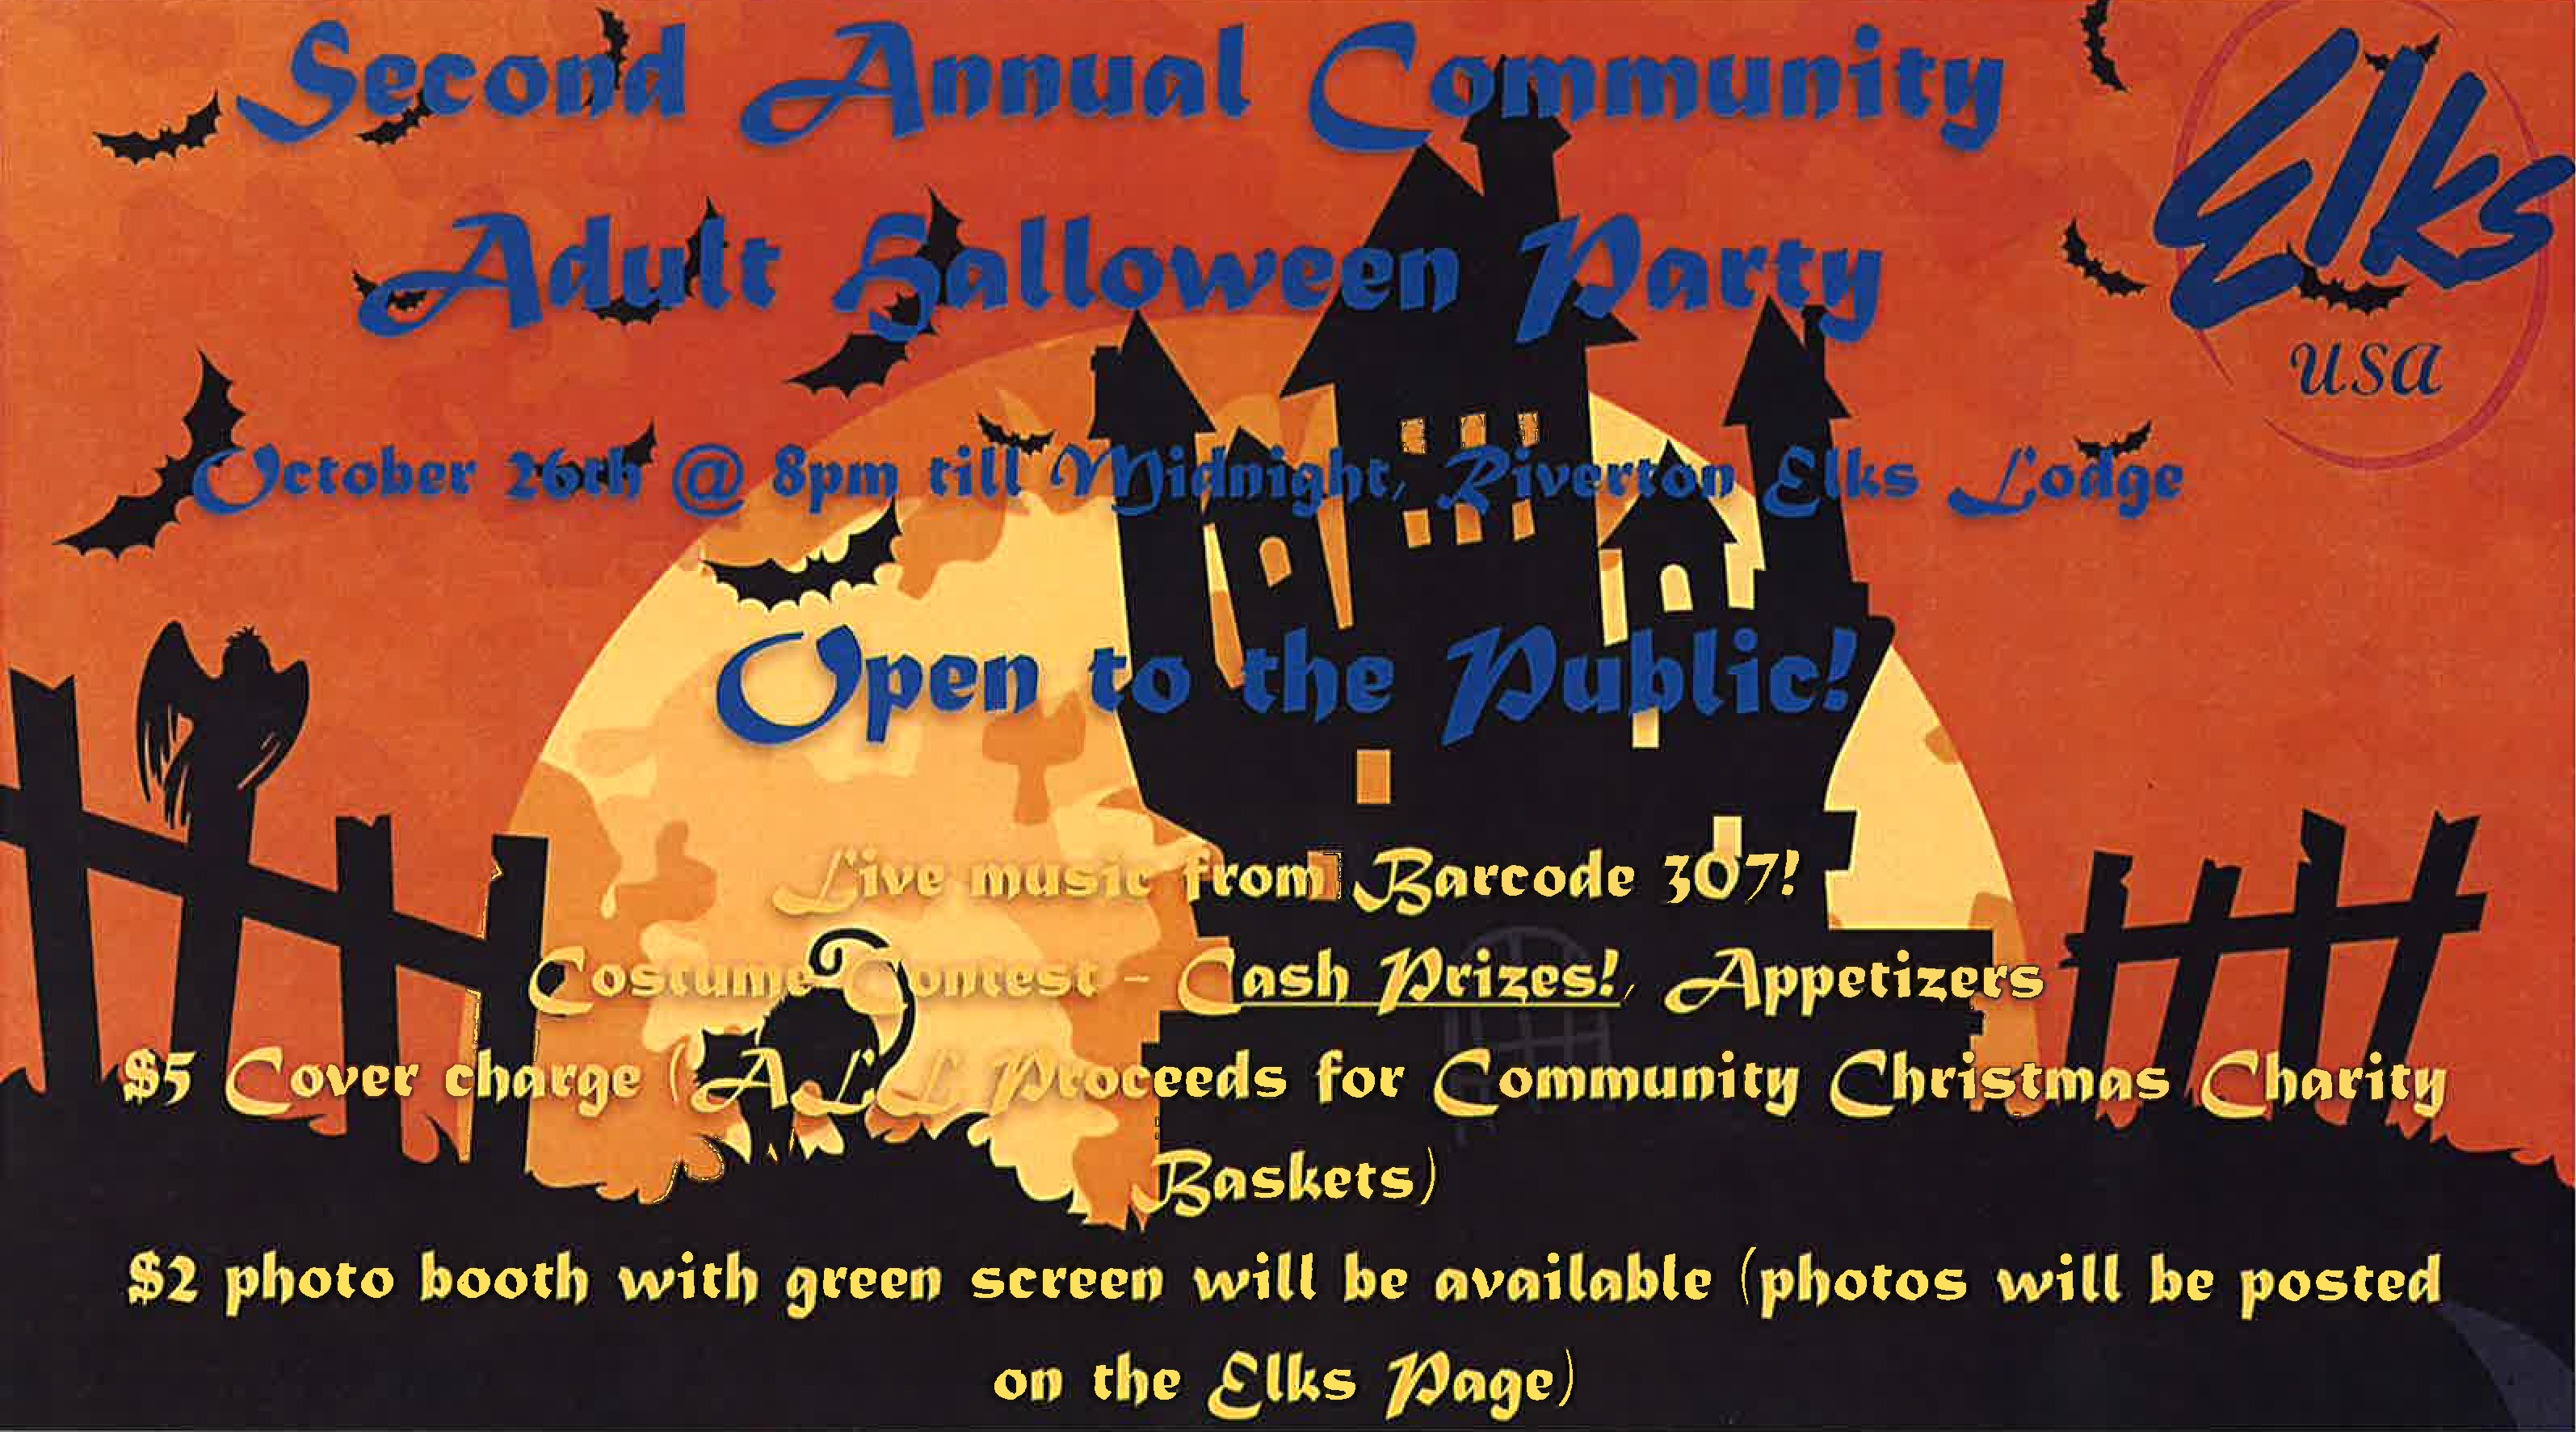 elks community adult halloween party - oct 26, 2018 - riverton